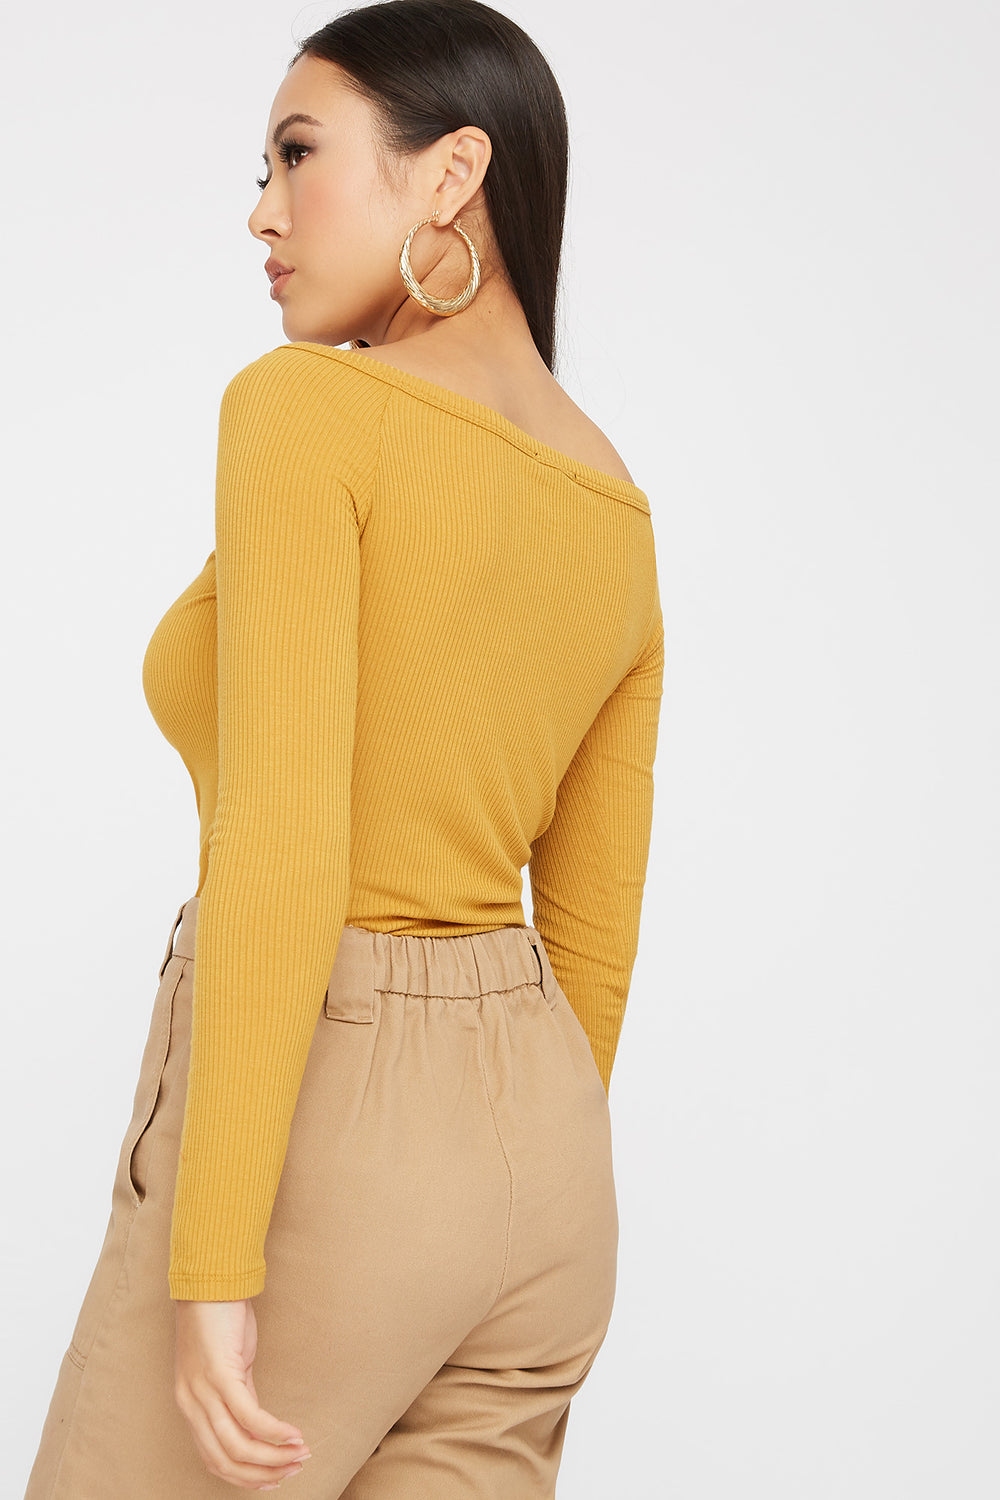 Knit Button Cropped Long Sleeve Mustard